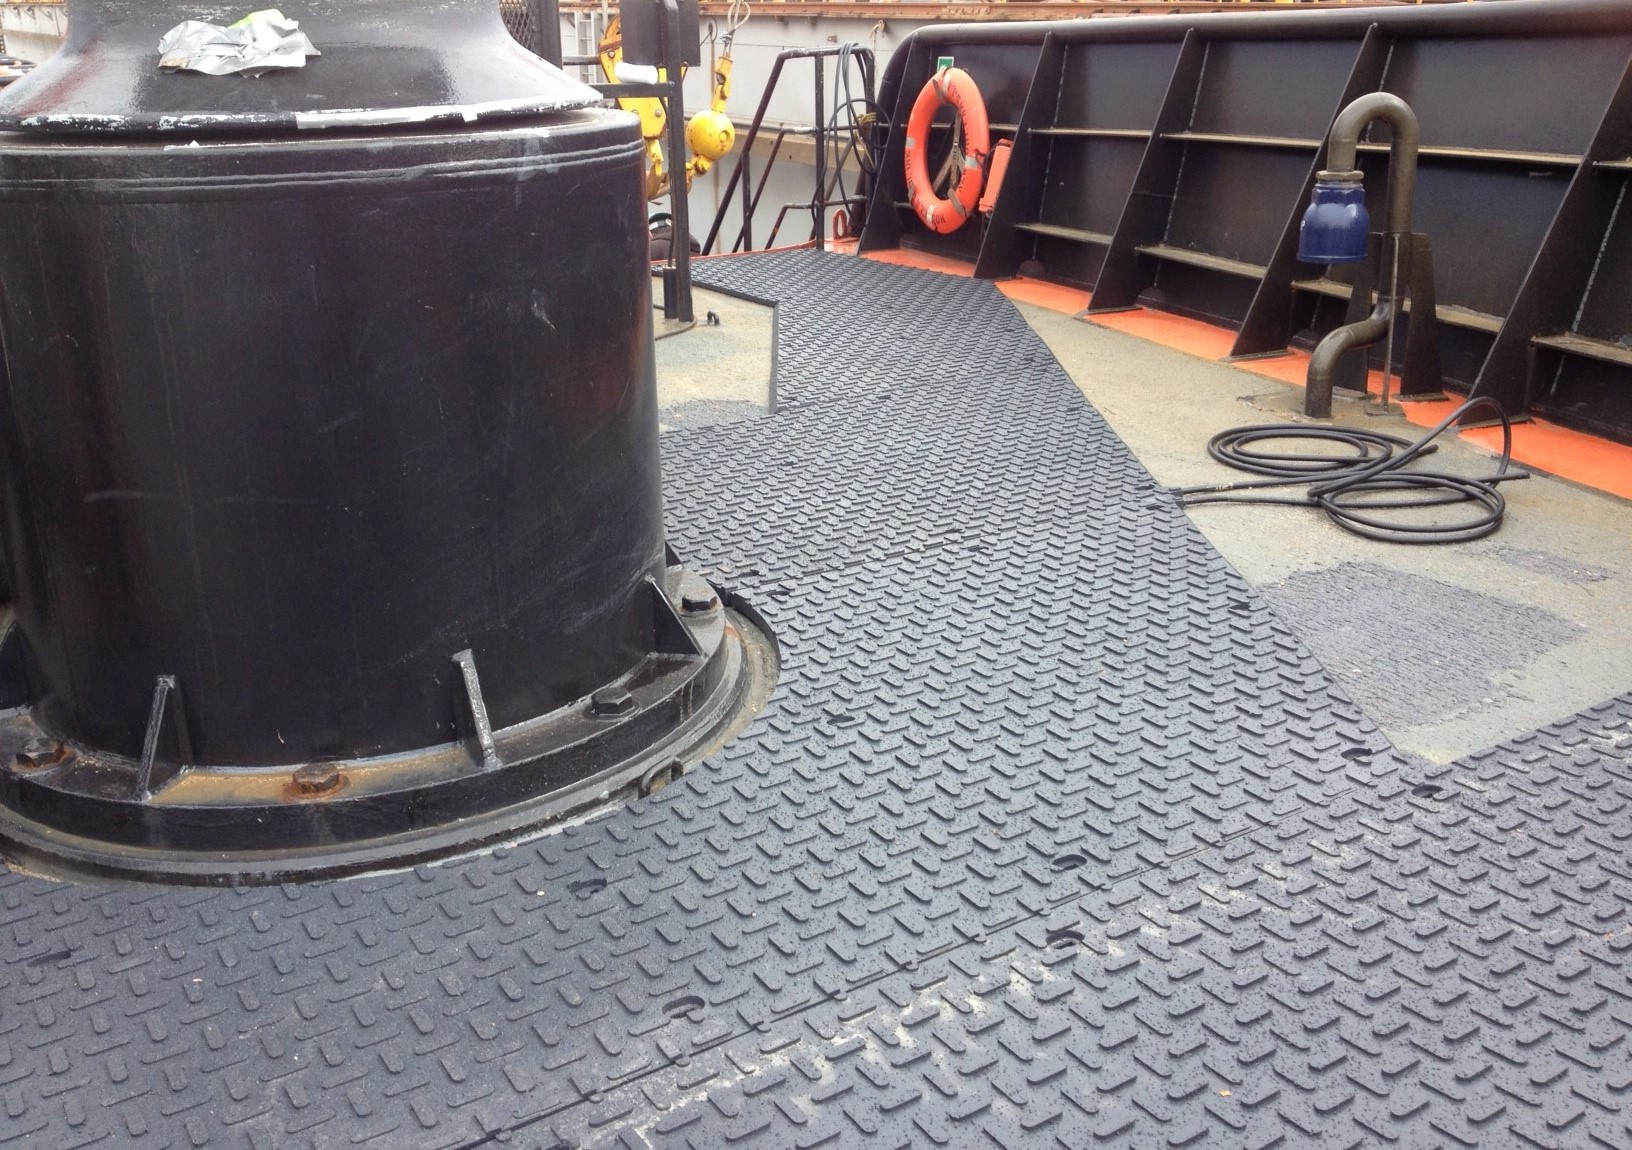 Centerline Focsle Heated Mats